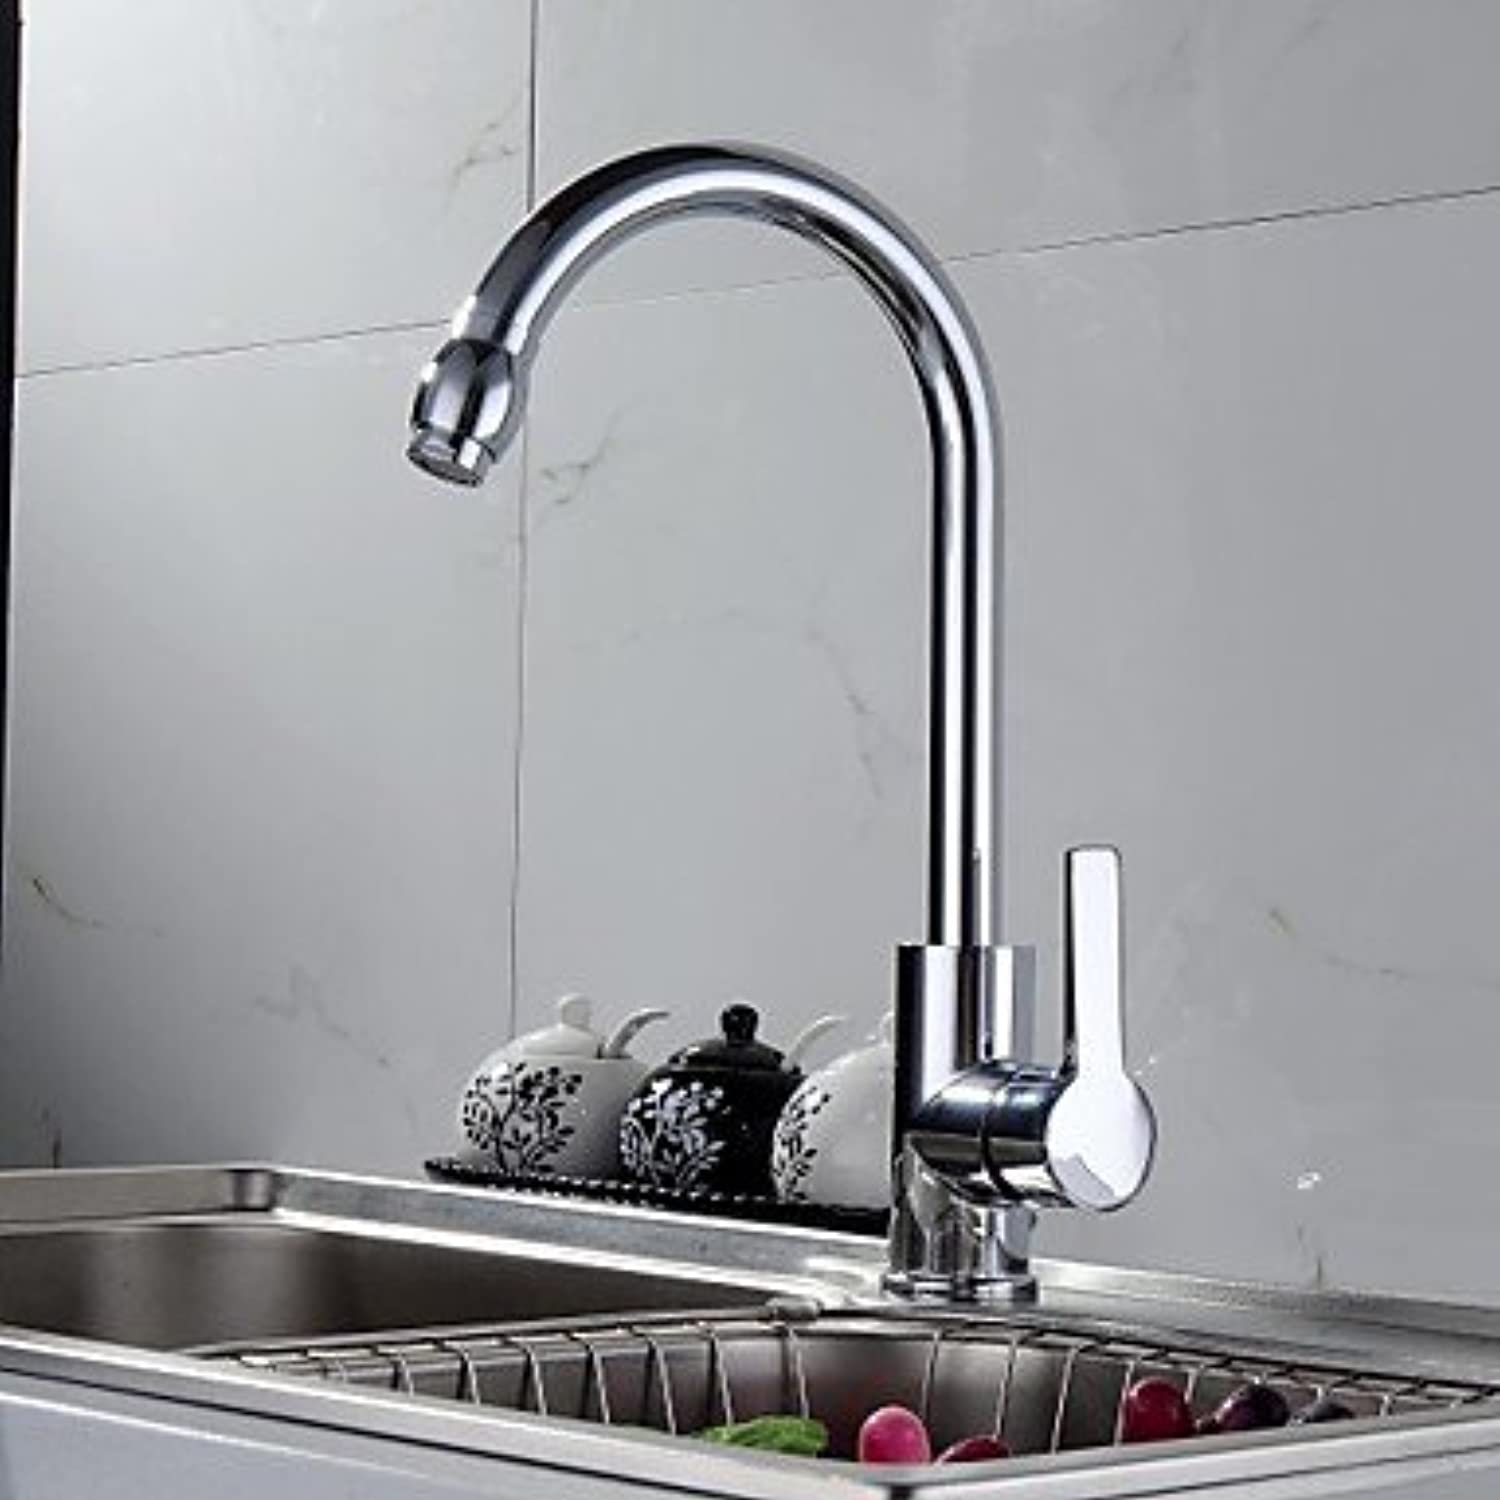 Axiba Contemporary Solid Brass Kitchen tap - Chrome Finish